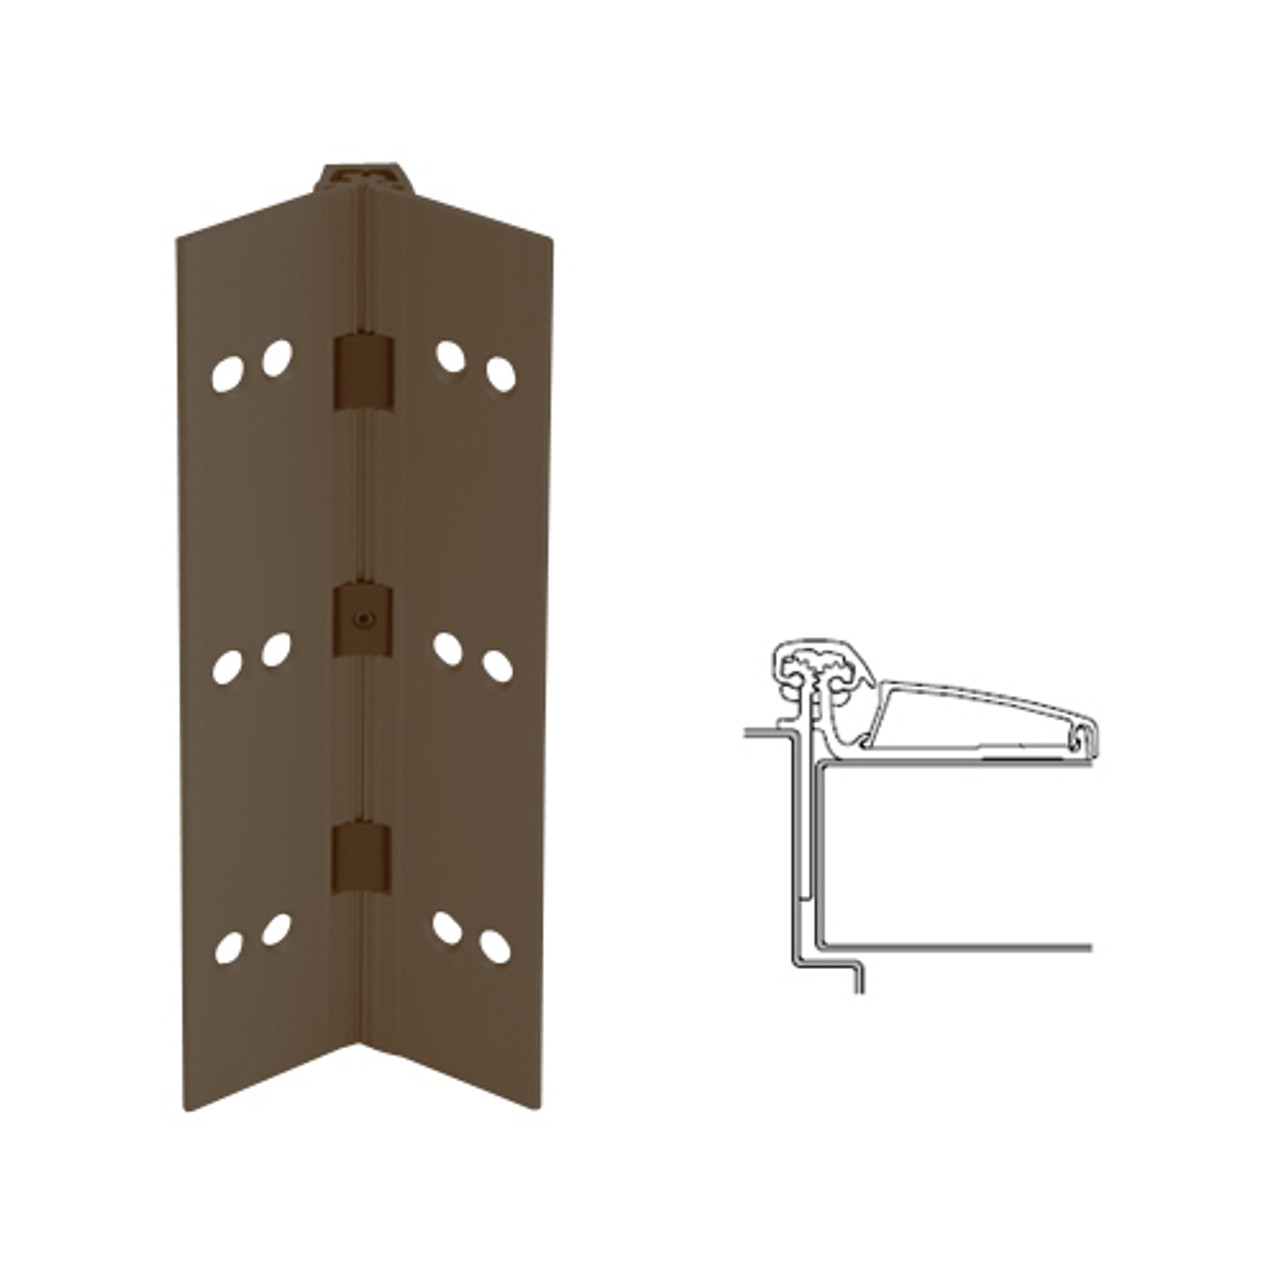 045XY-313AN-85-TF IVES Adjustable Half Surface Continuous Geared Hinges with Thread Forming Screws in Dark Bronze Anodized